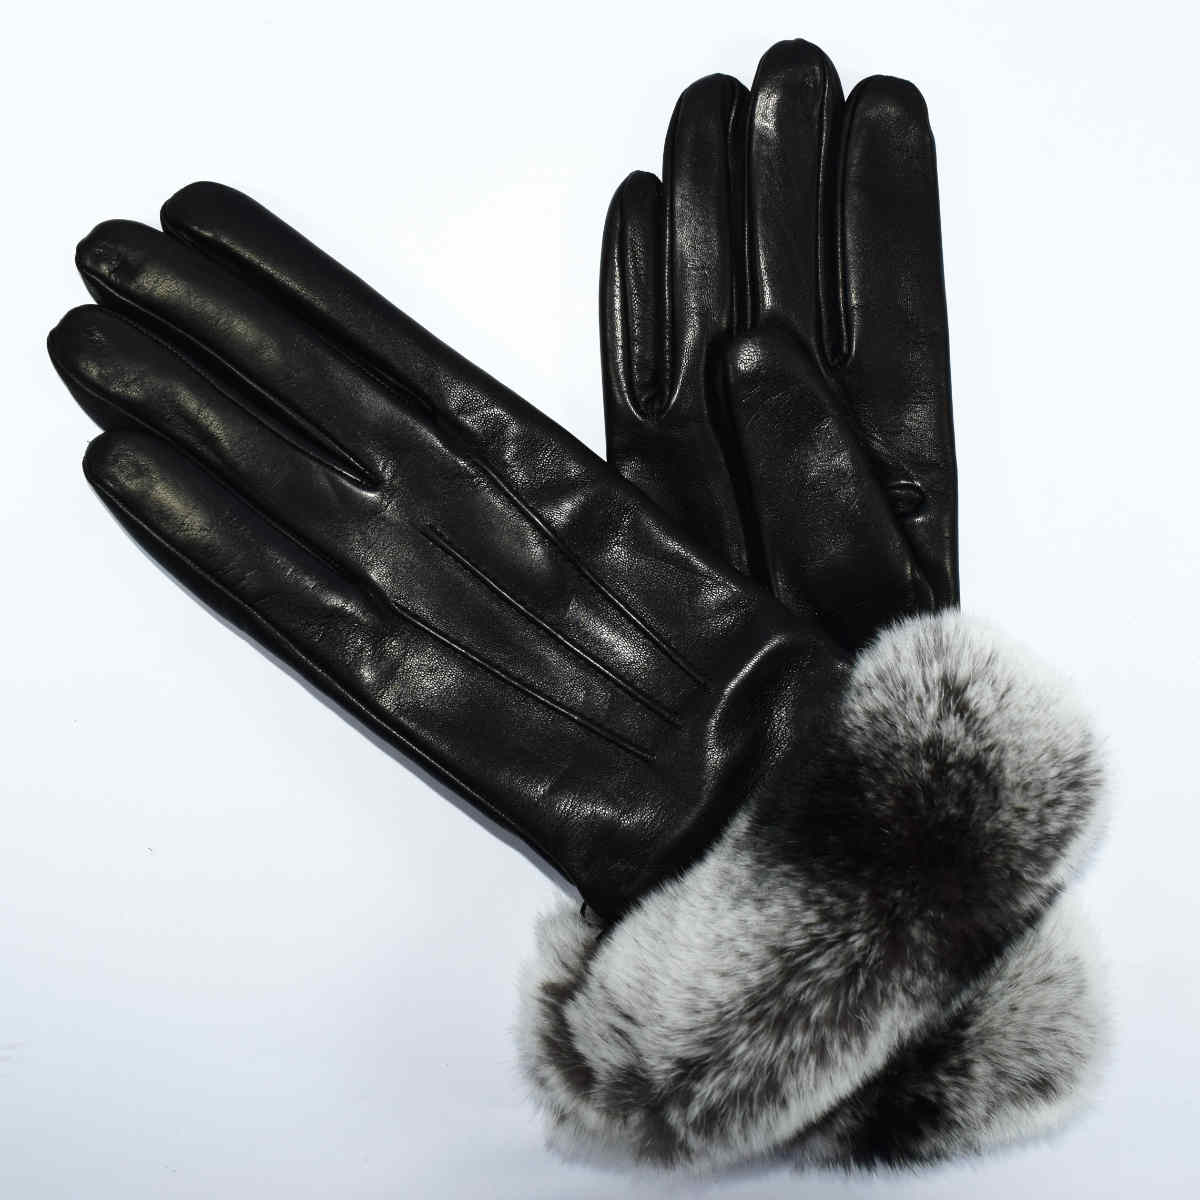 5R36 GLOVES WITH FUR by Bottega Fiorentina